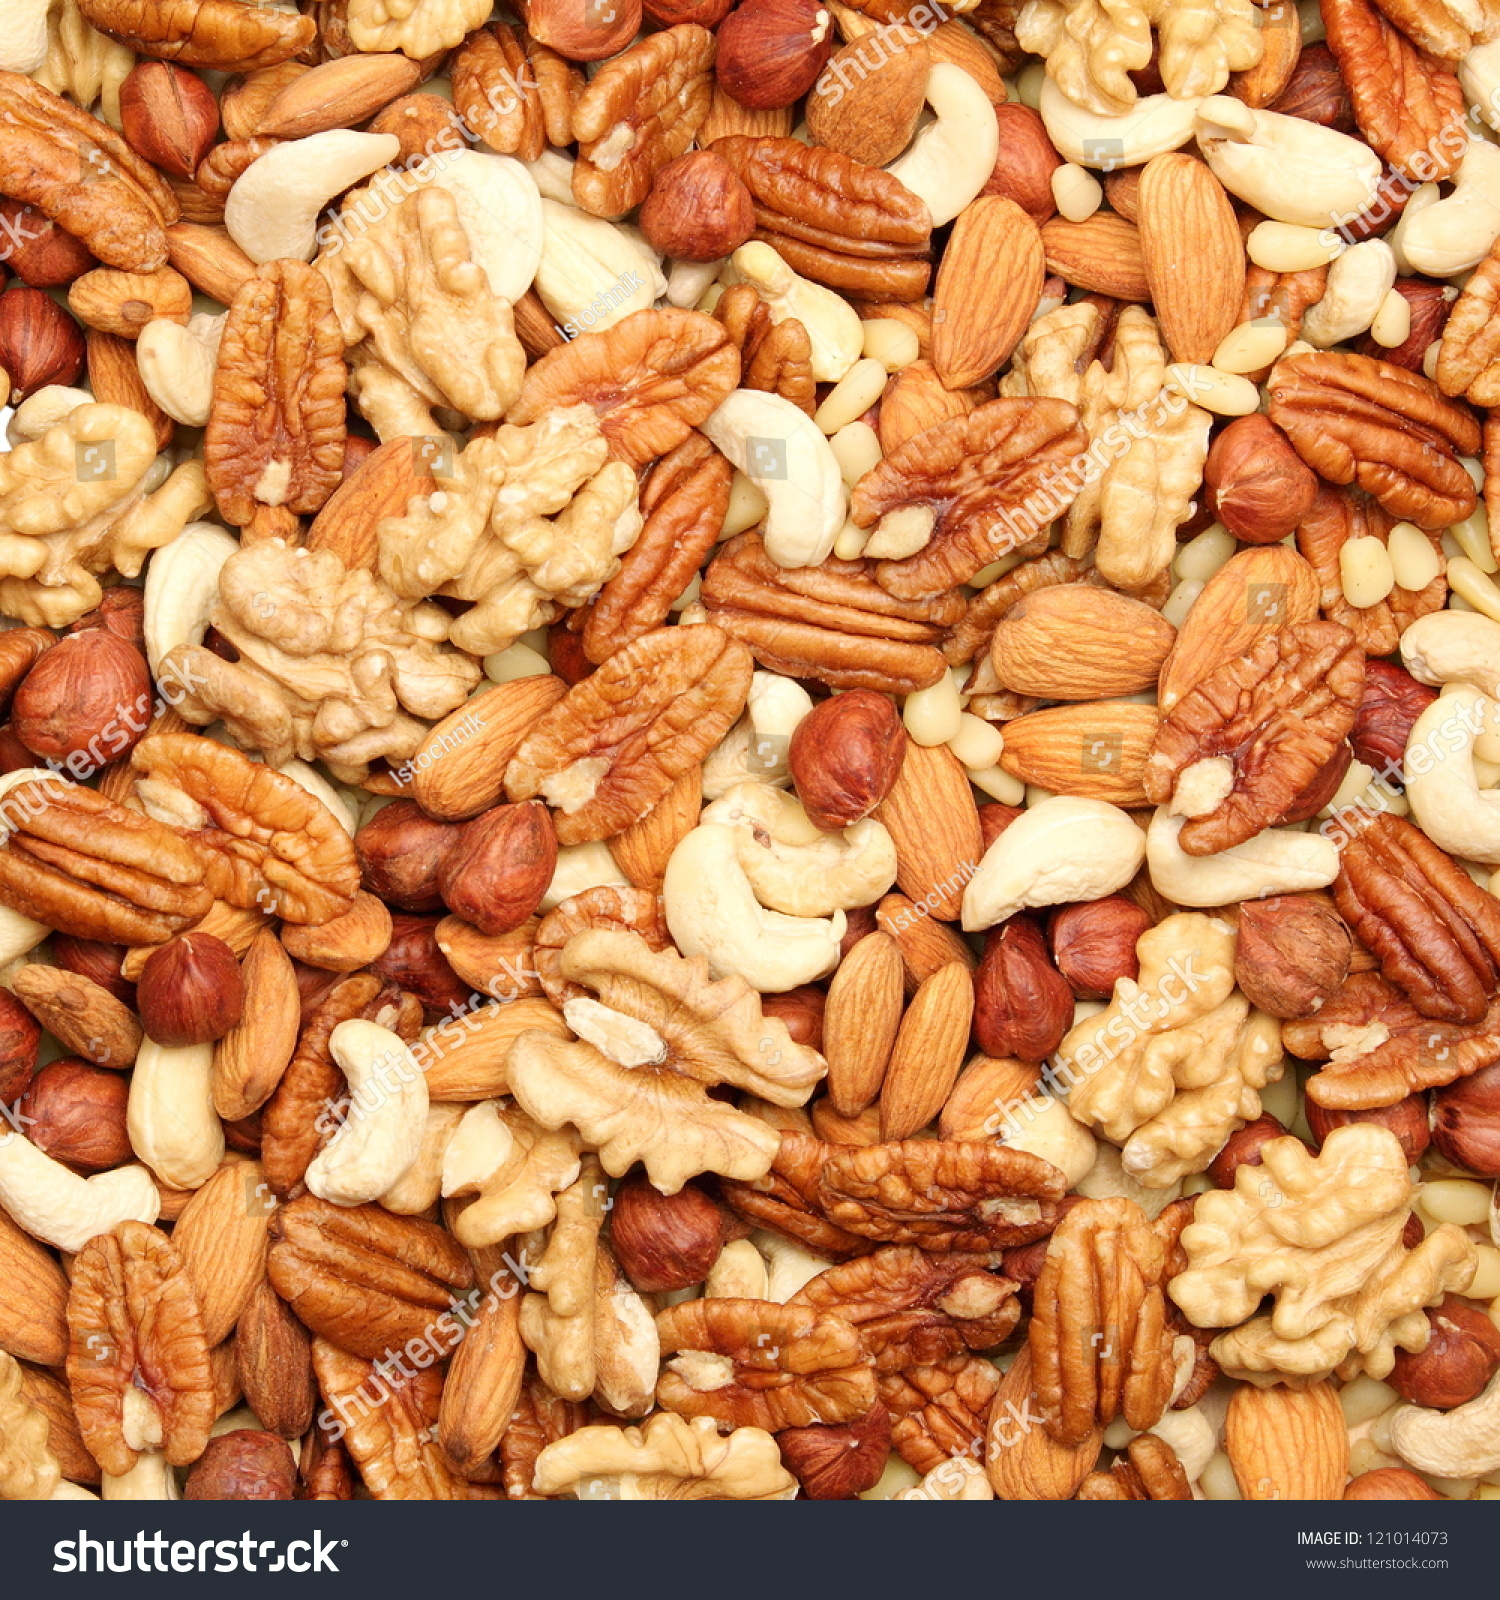 background mixed nuts pecans hazelnuts walnuts stock photo. Black Bedroom Furniture Sets. Home Design Ideas